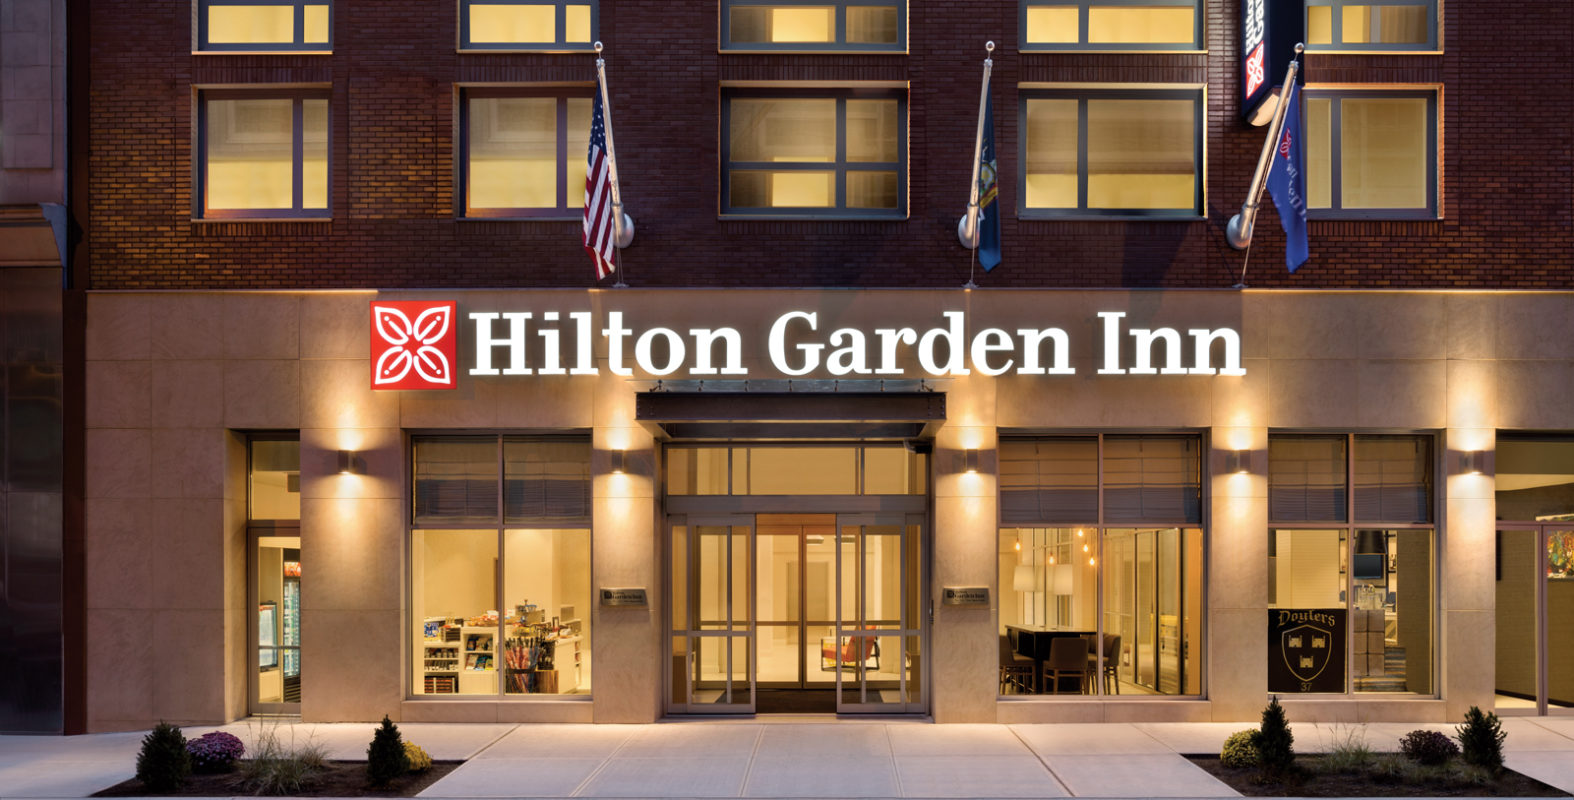 Hilton Garden Inn New York Times Square South front entrance